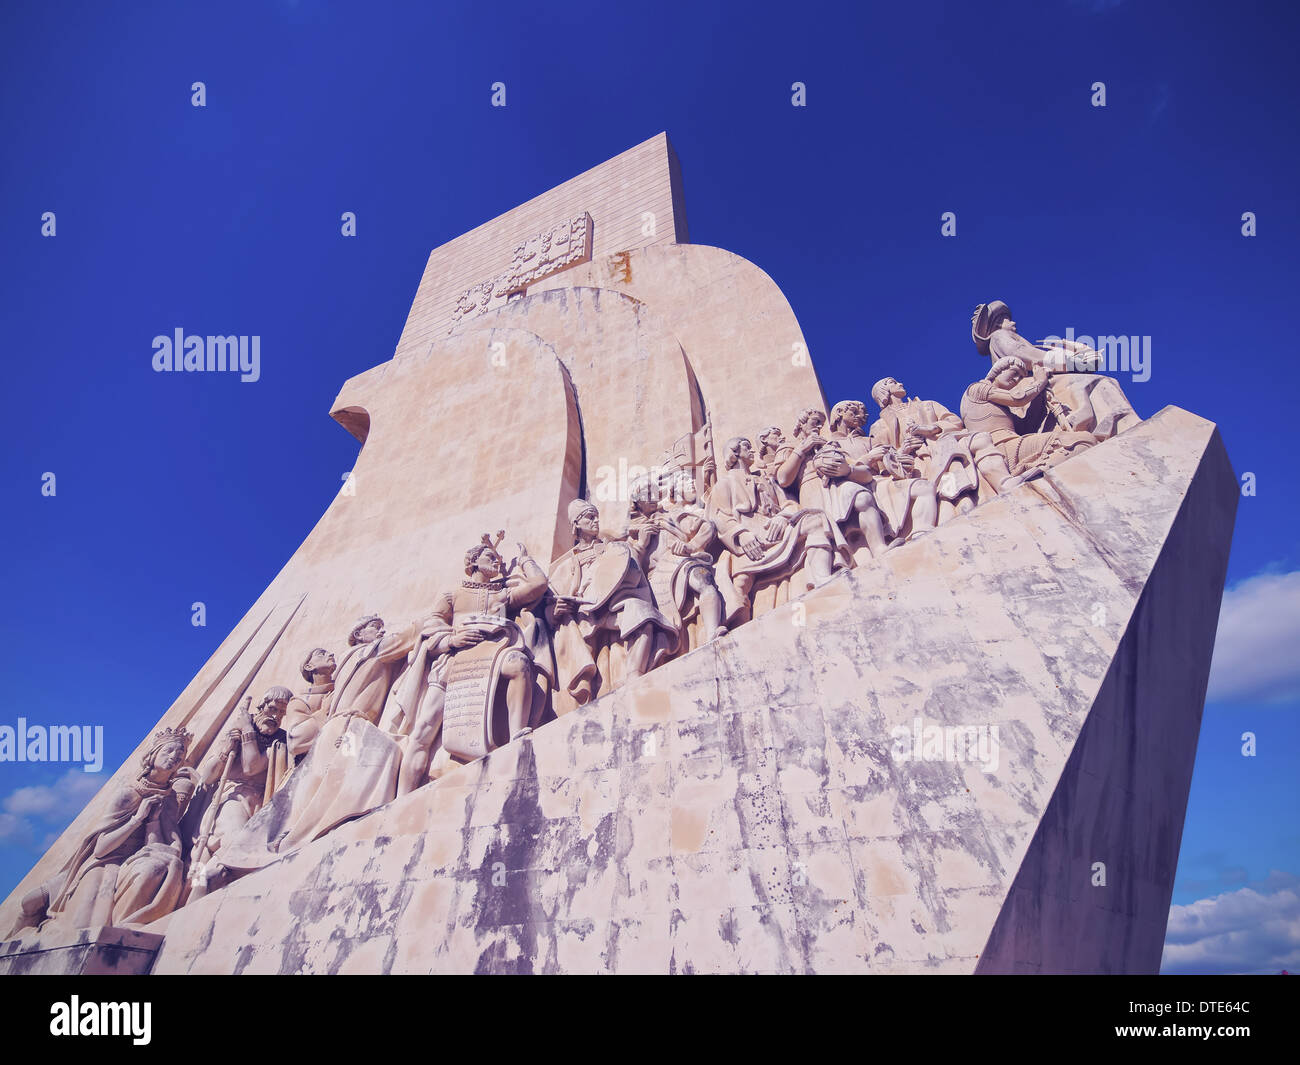 Padrao dos Descobrimentos - Monument to the Discoveries in Belem, Lisbon, Portugal - Stock Image